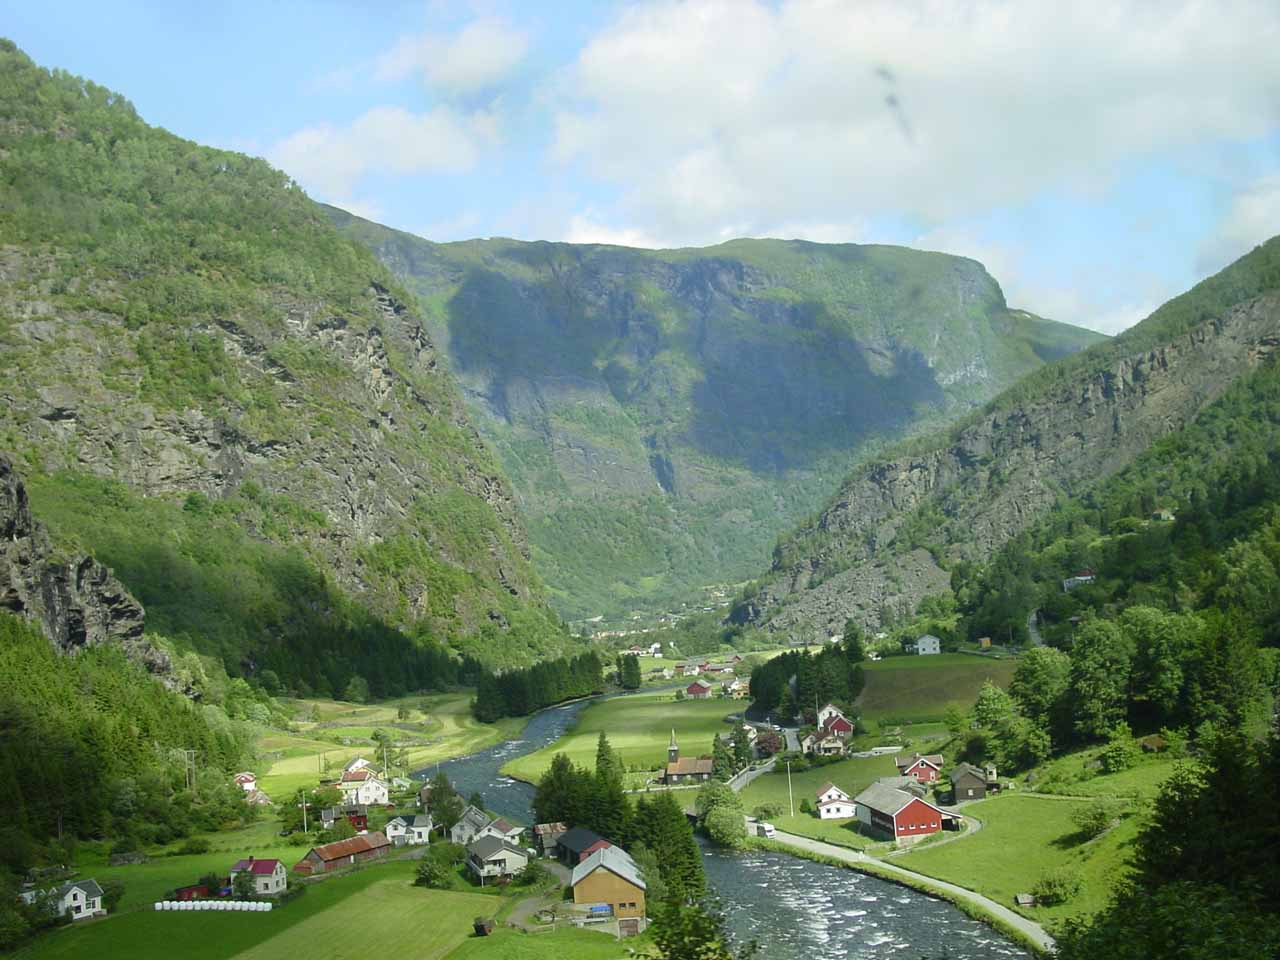 Colorful farms and homes decorating the scenic Flåmsdalen Valley. We managed to get such views while riding the Flam Railway